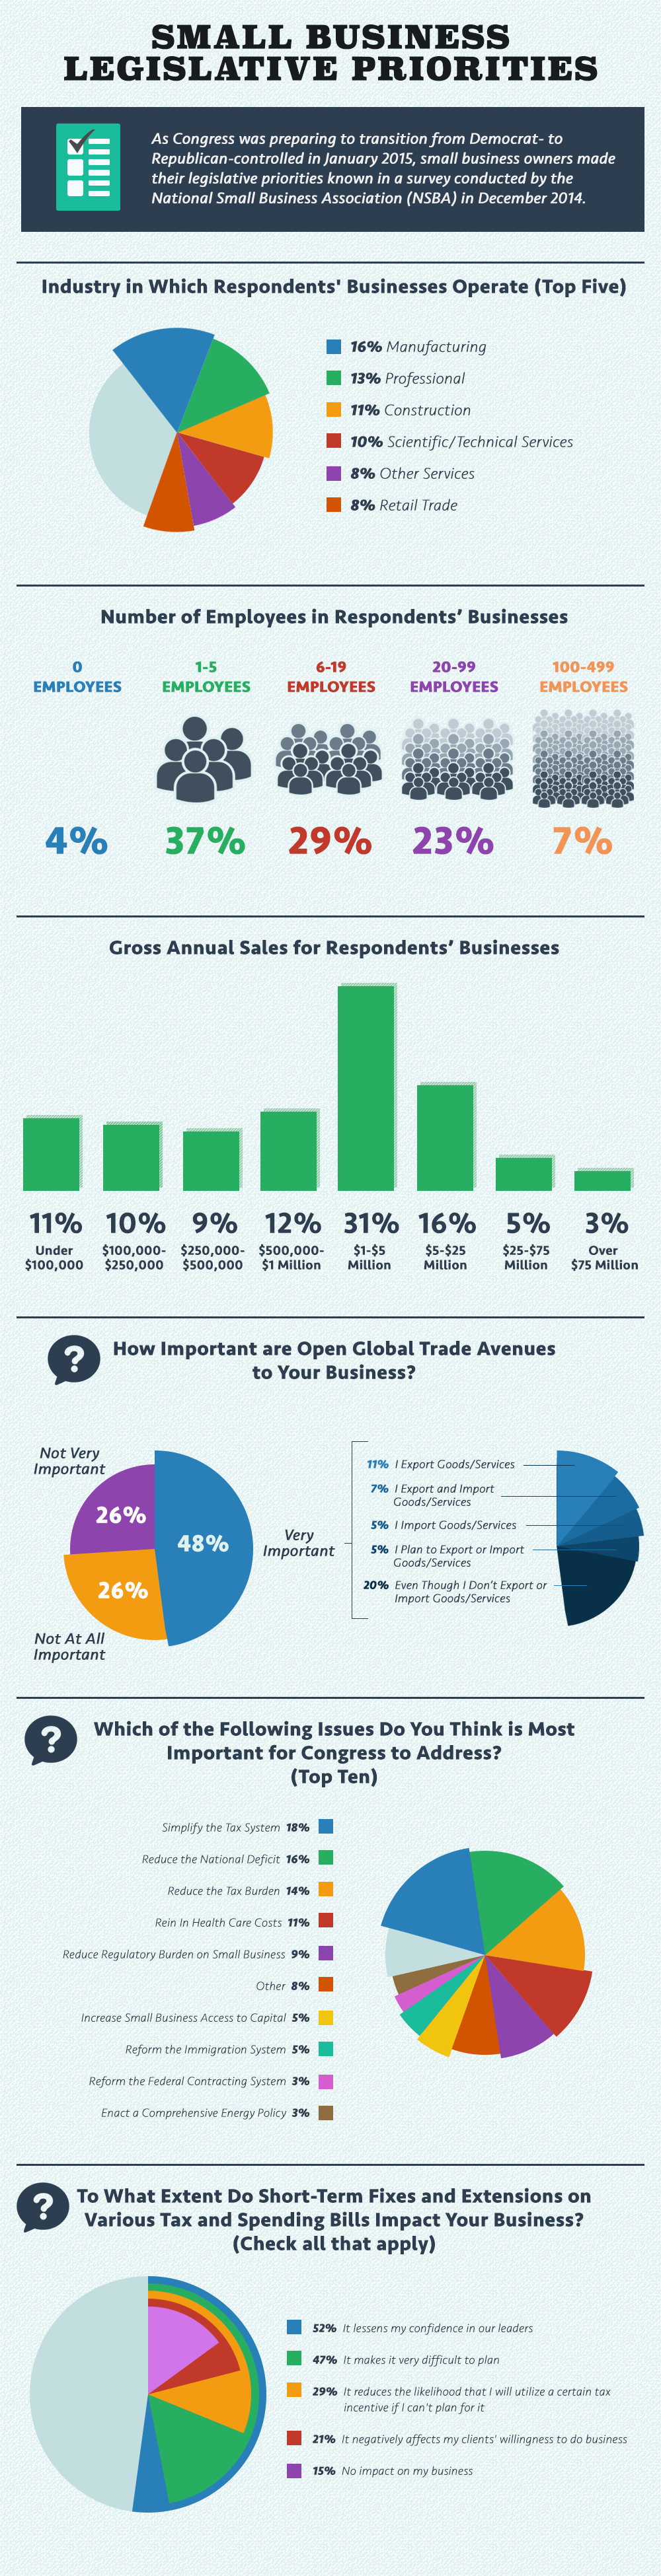 Small business legislative priorities Infographic